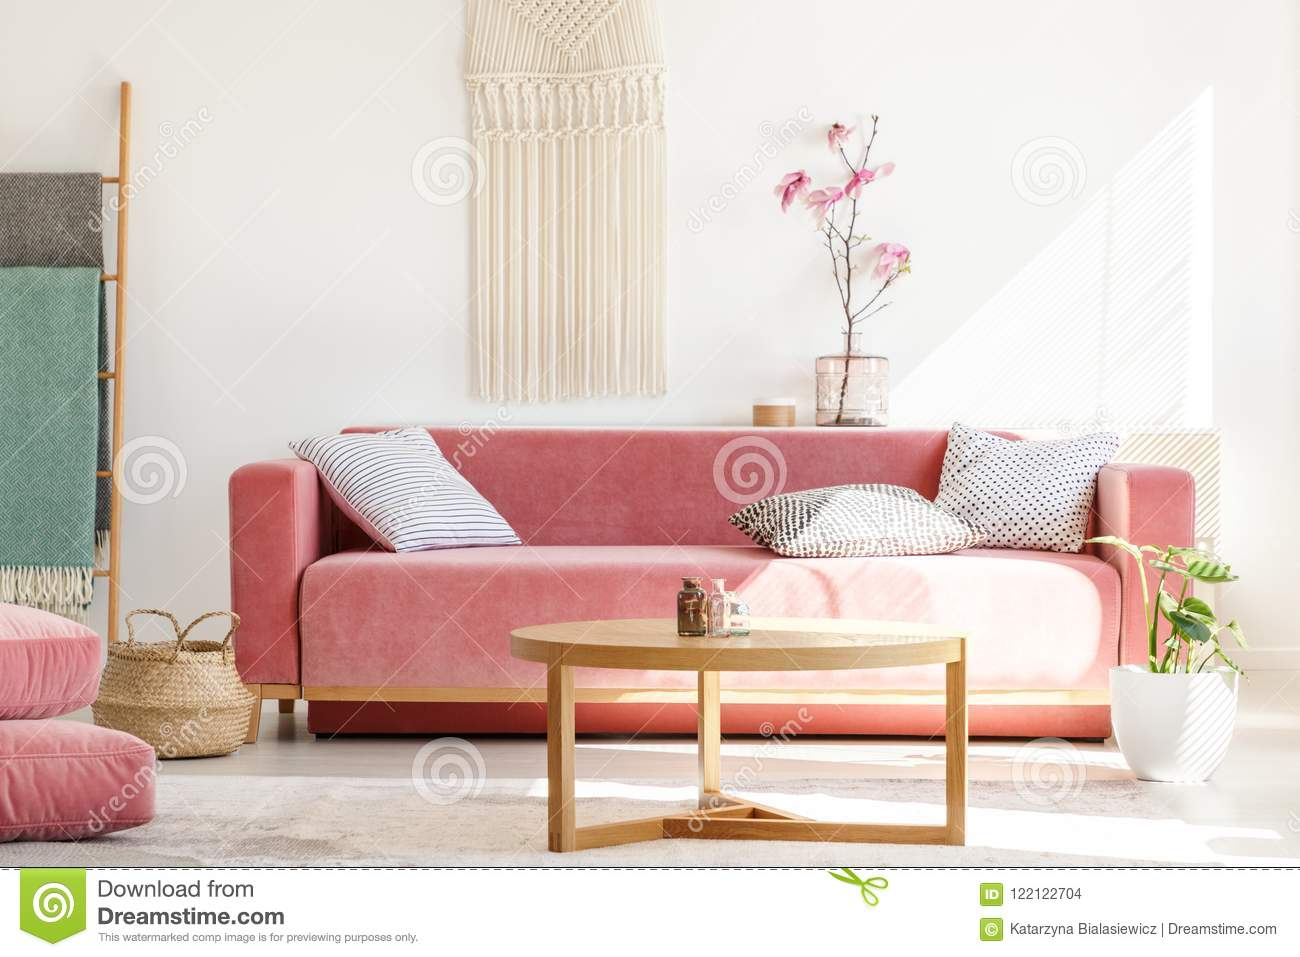 Wooden table in front of red sofa in pastel living room interior